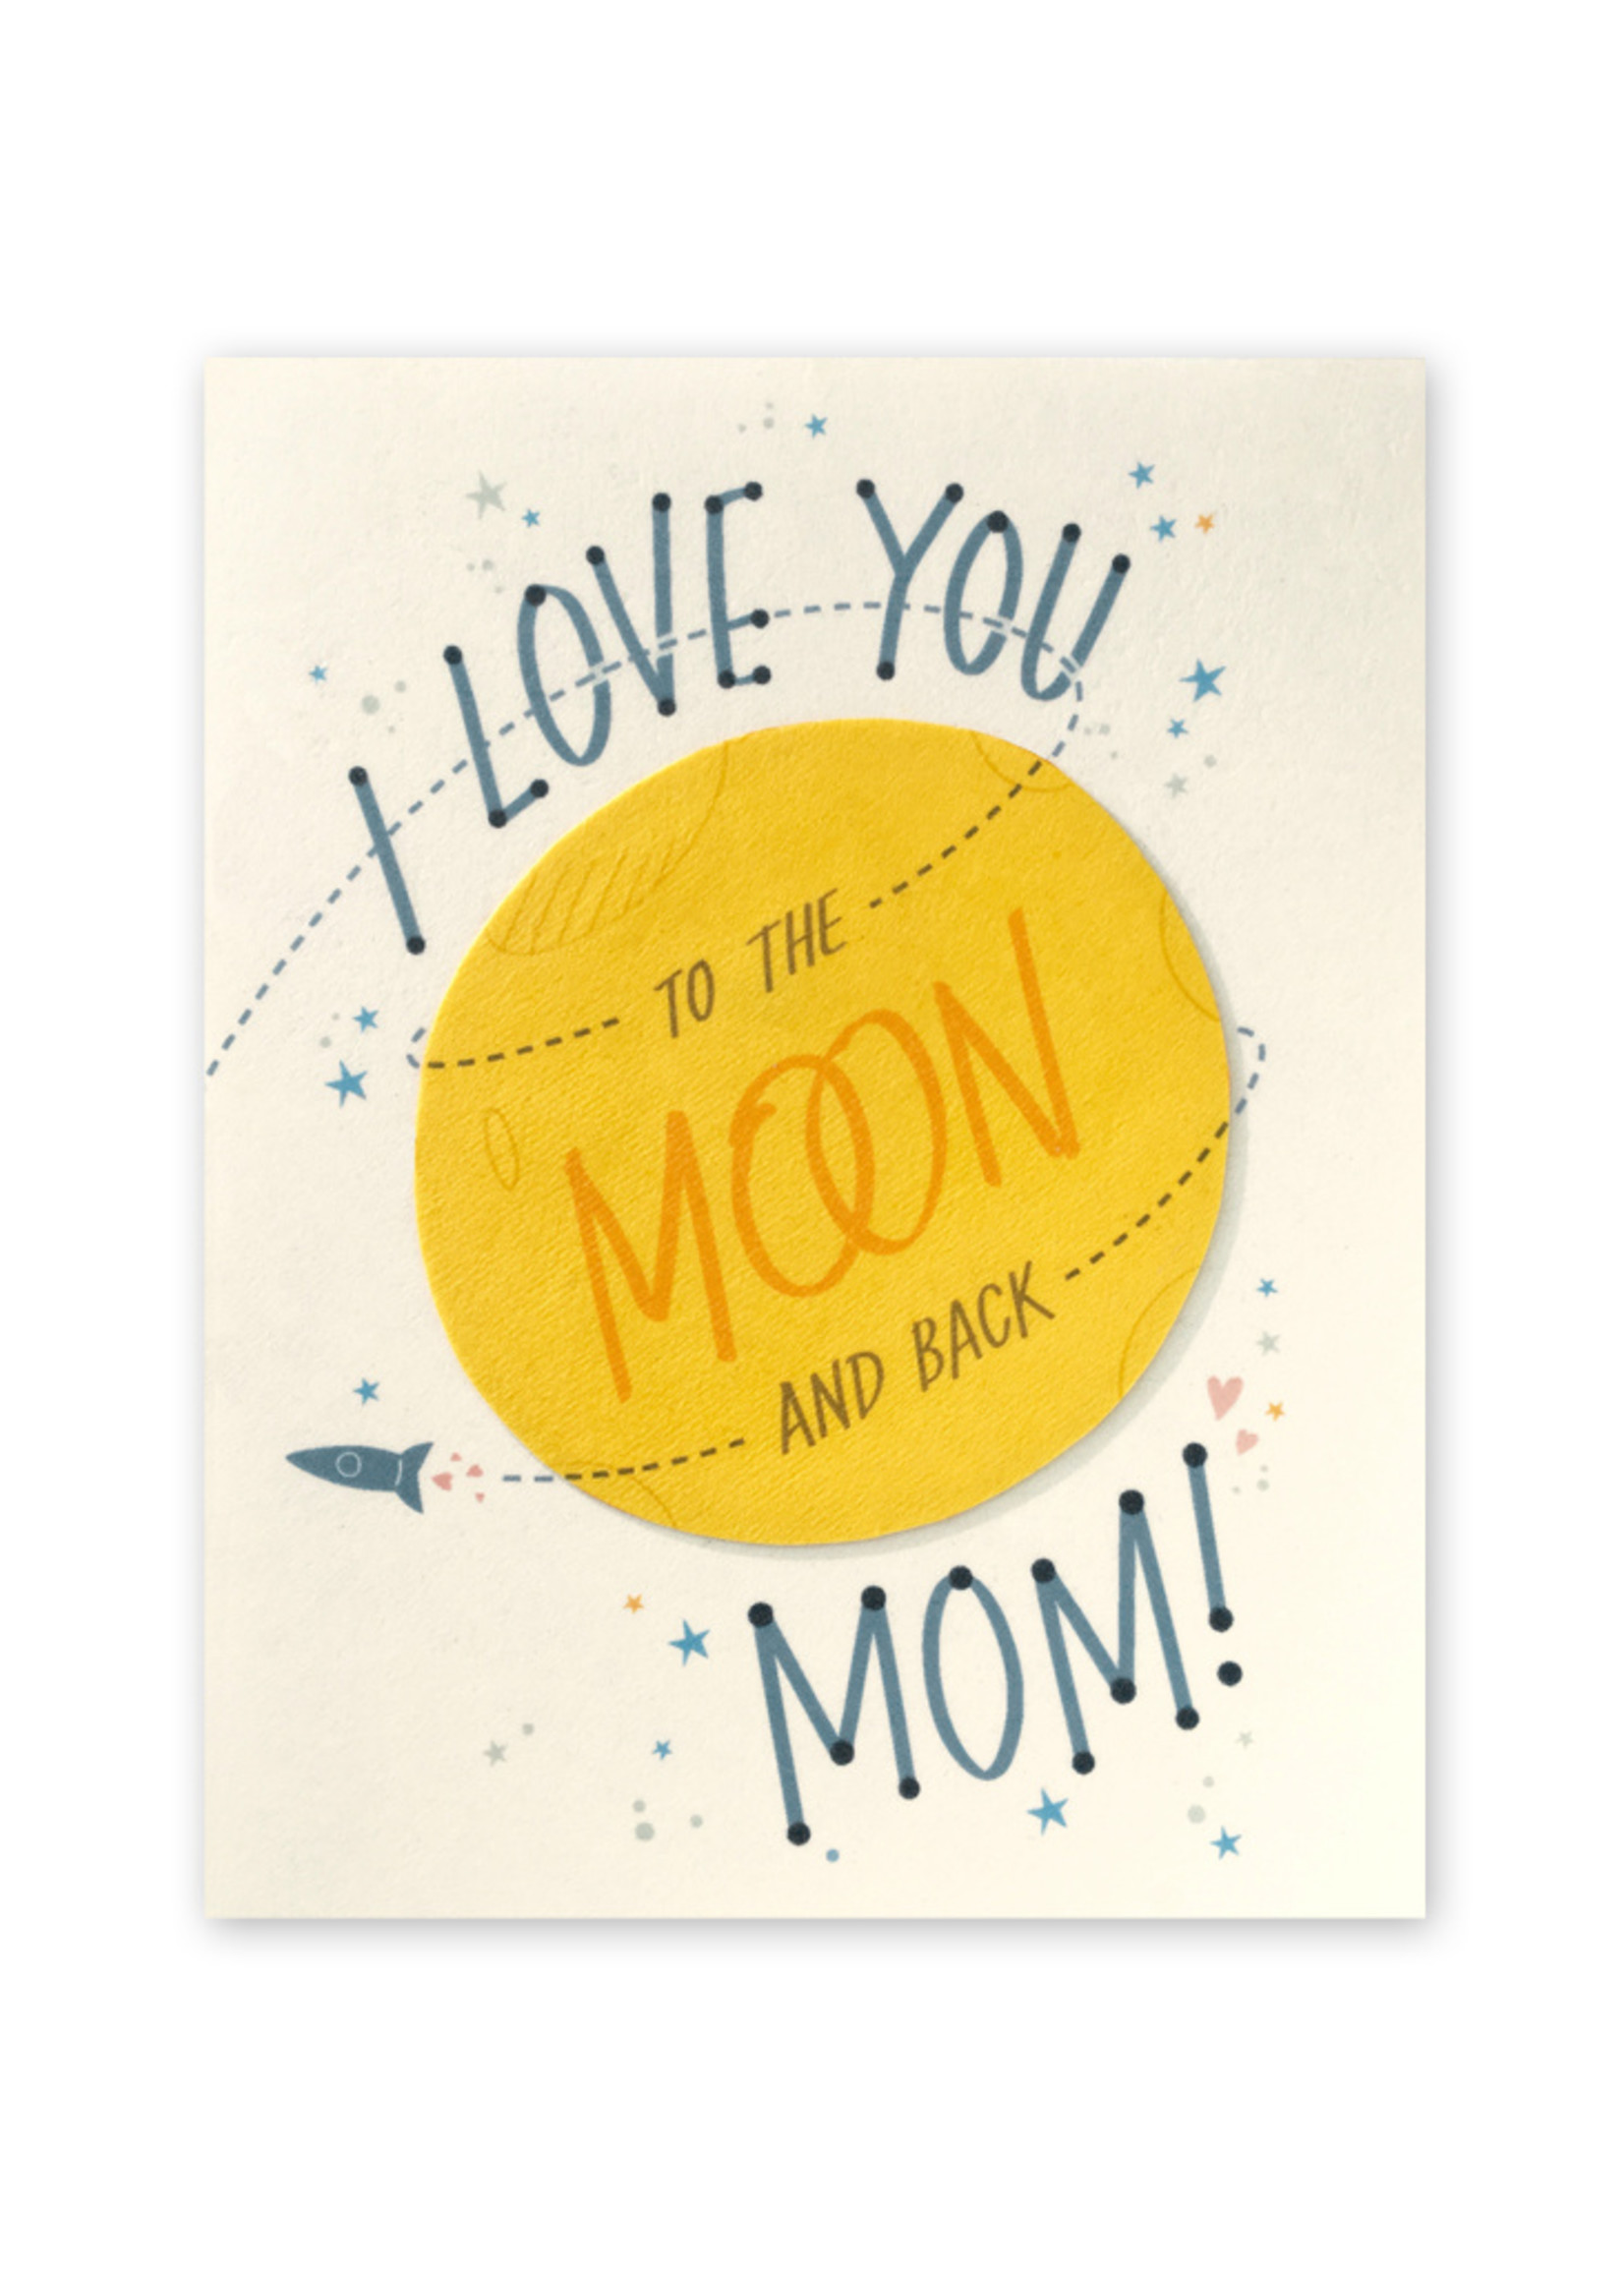 Good Paper Moon and Back Mom Card